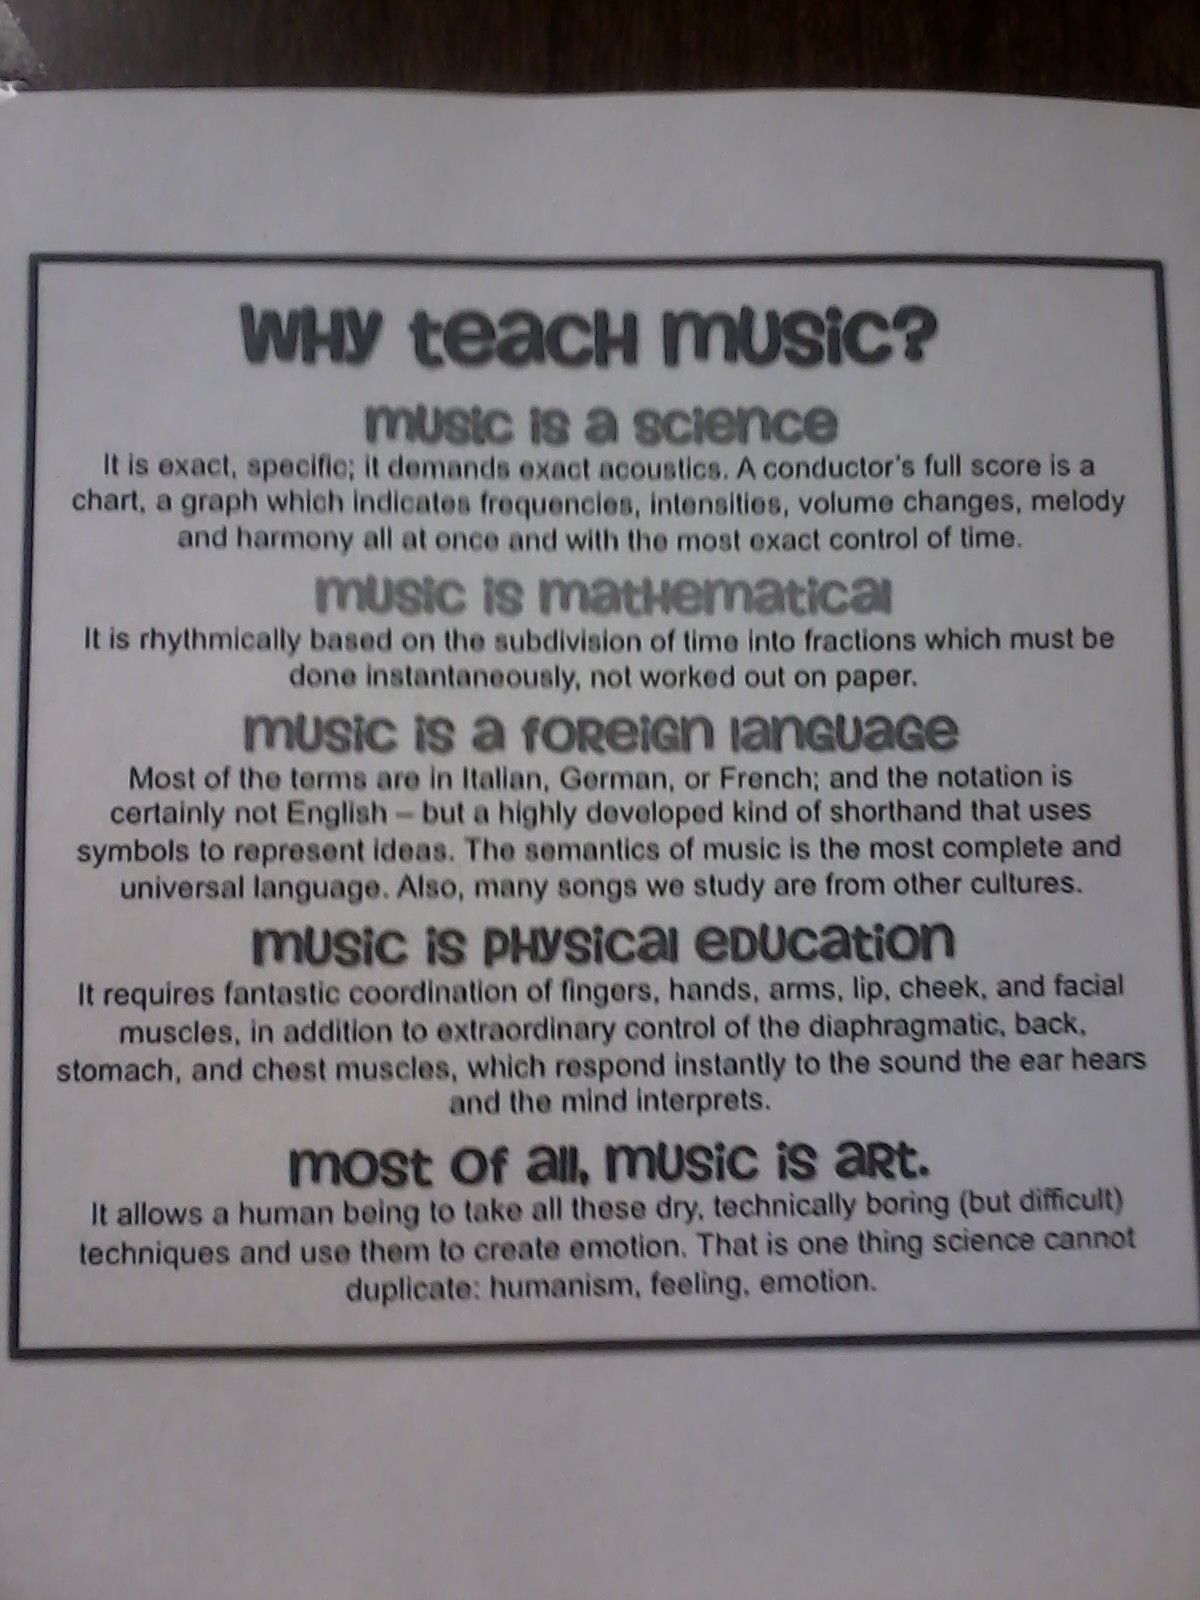 why teach music Teaching music through composition: a curriculum using technology [barbara freedman] on amazoncom free shipping on qualifying offers teaching music through composition offers a practical, fully multimedia curriculum designed to teach basic musical concepts through the creative process of music composition.